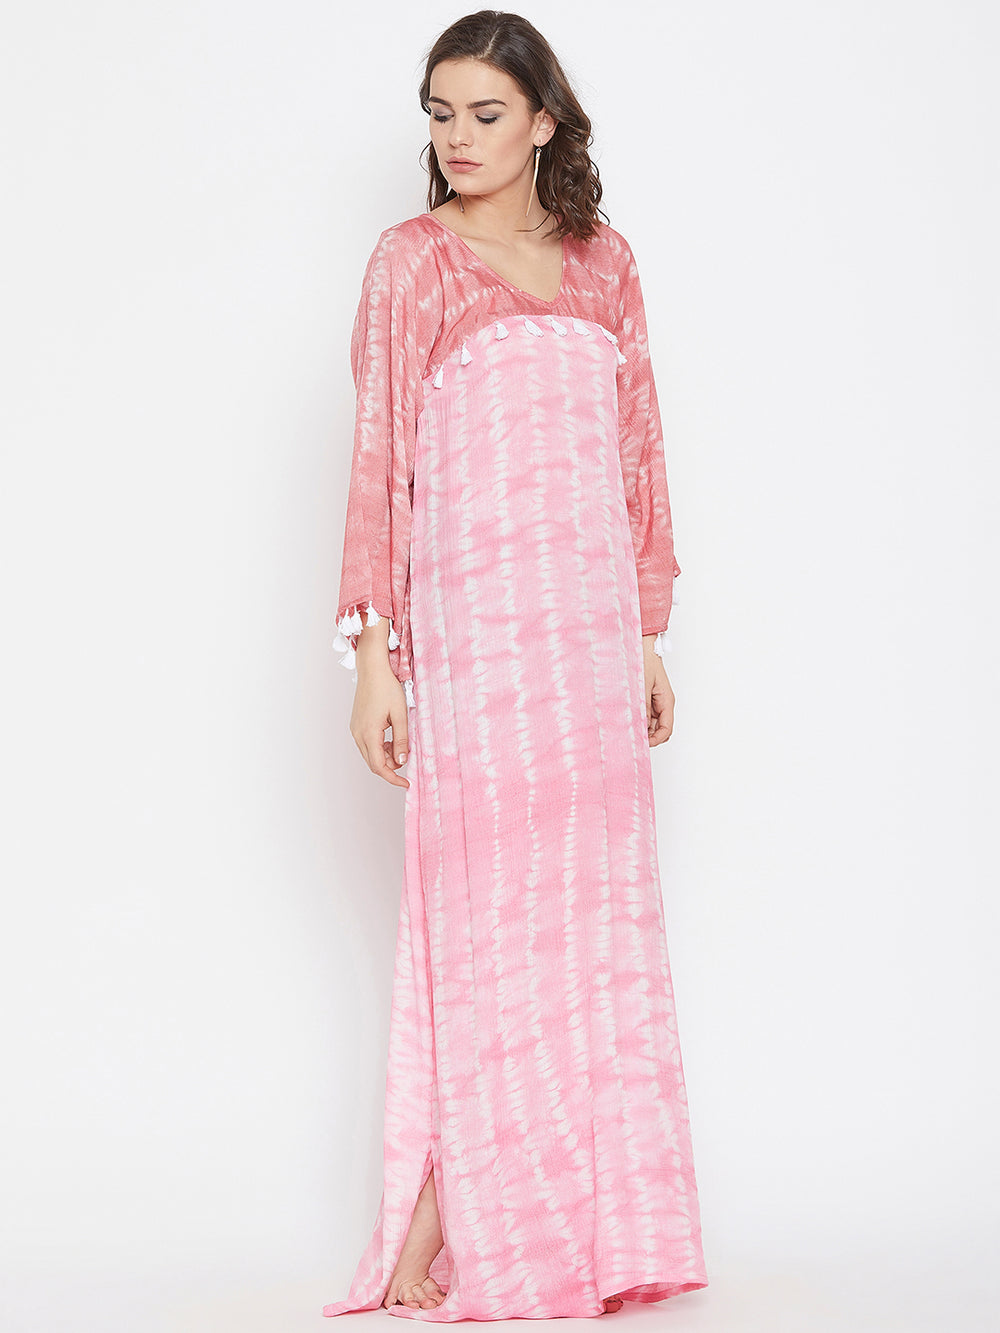 Pink Sand Tie-Dye Maxi Cover-Up